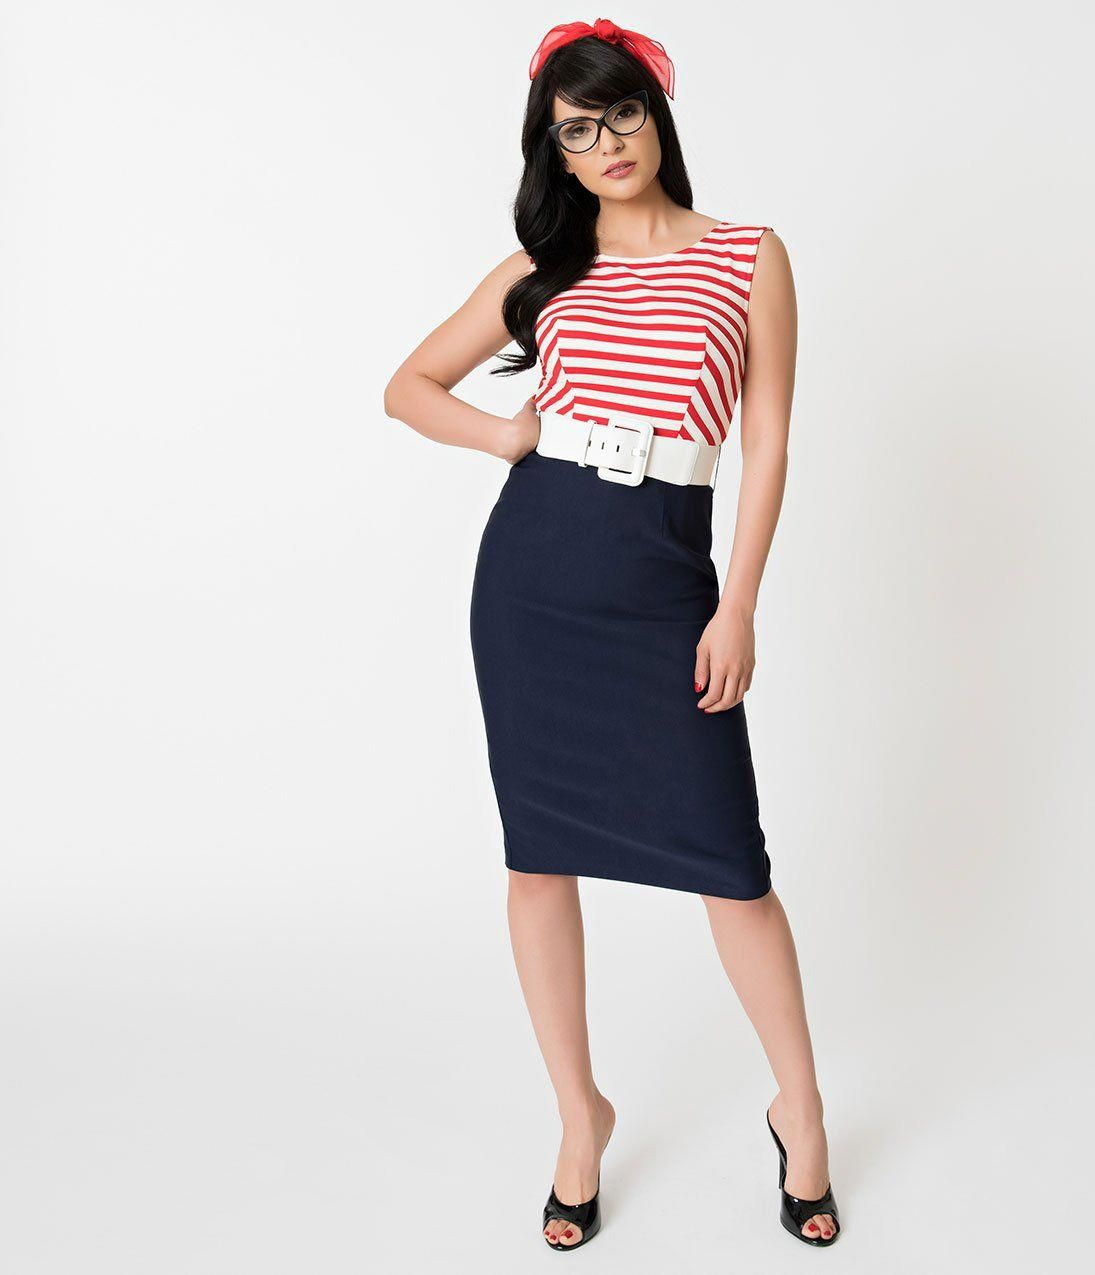 c3b92cac53fa Barbie x Unique Vintage Cruise Stripes Nautical Pencil Dress   WomenDressesAmazon